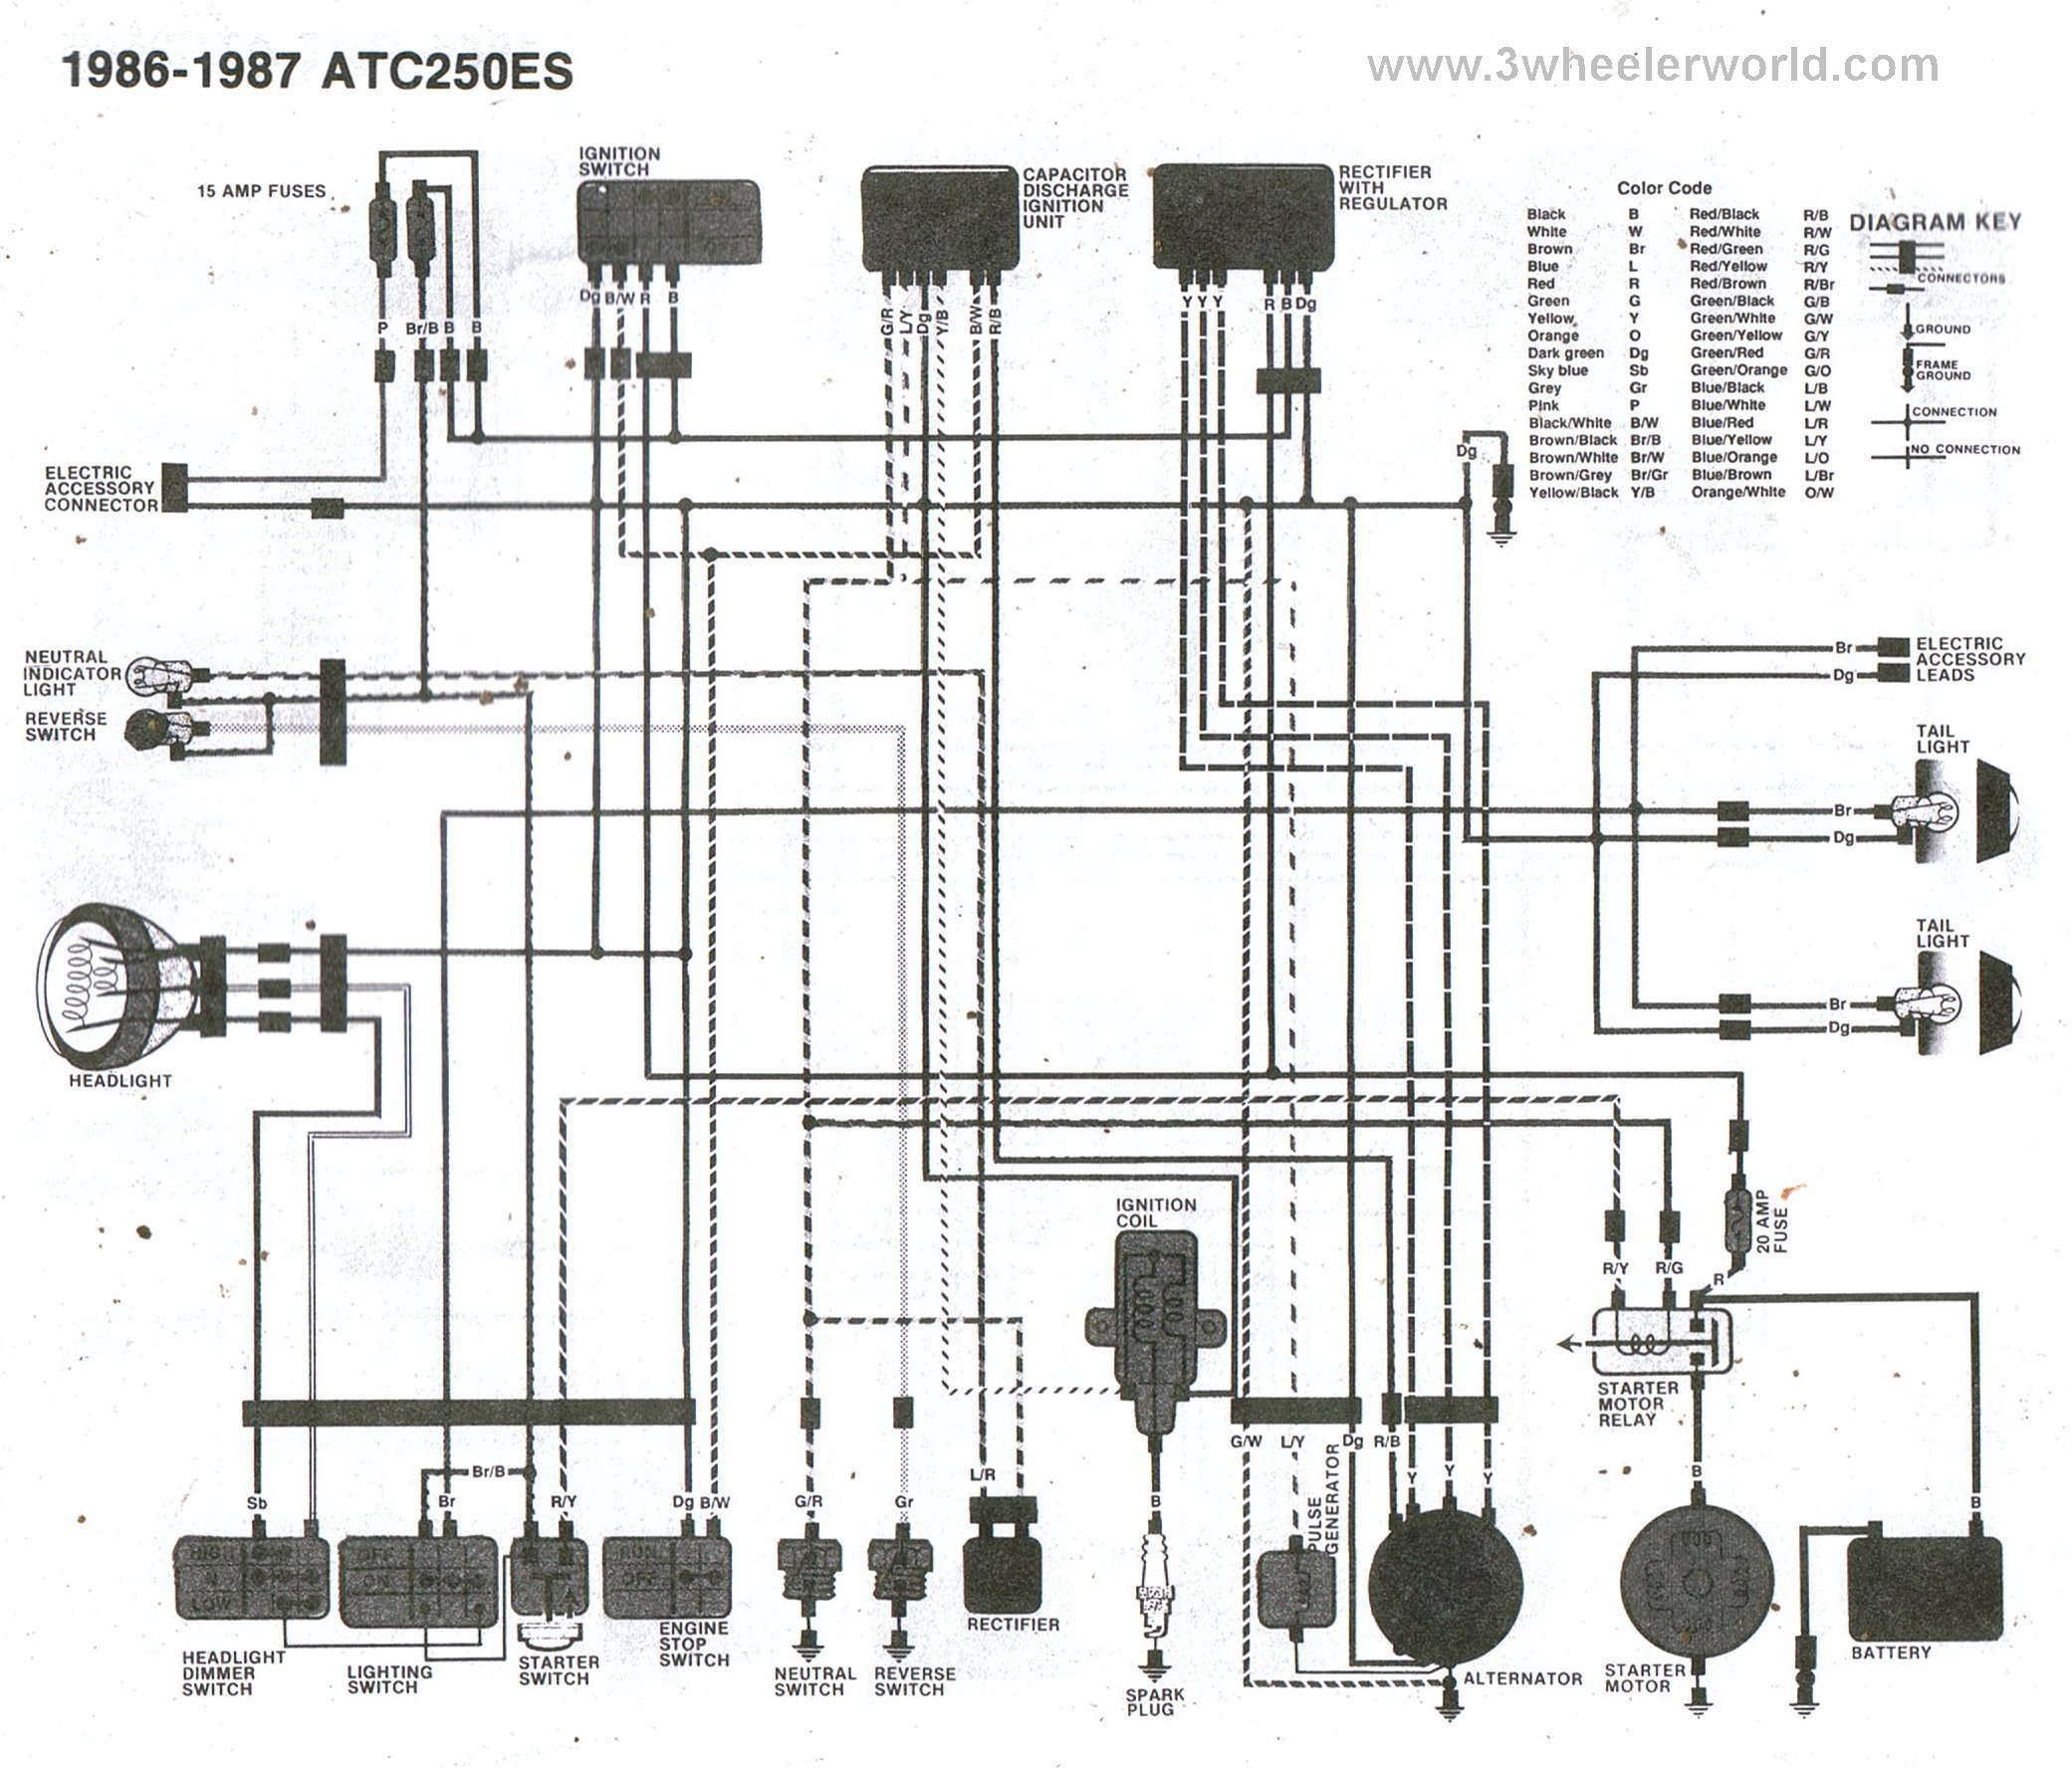 Shovelhead Chopper Wiring Diagram Alternator